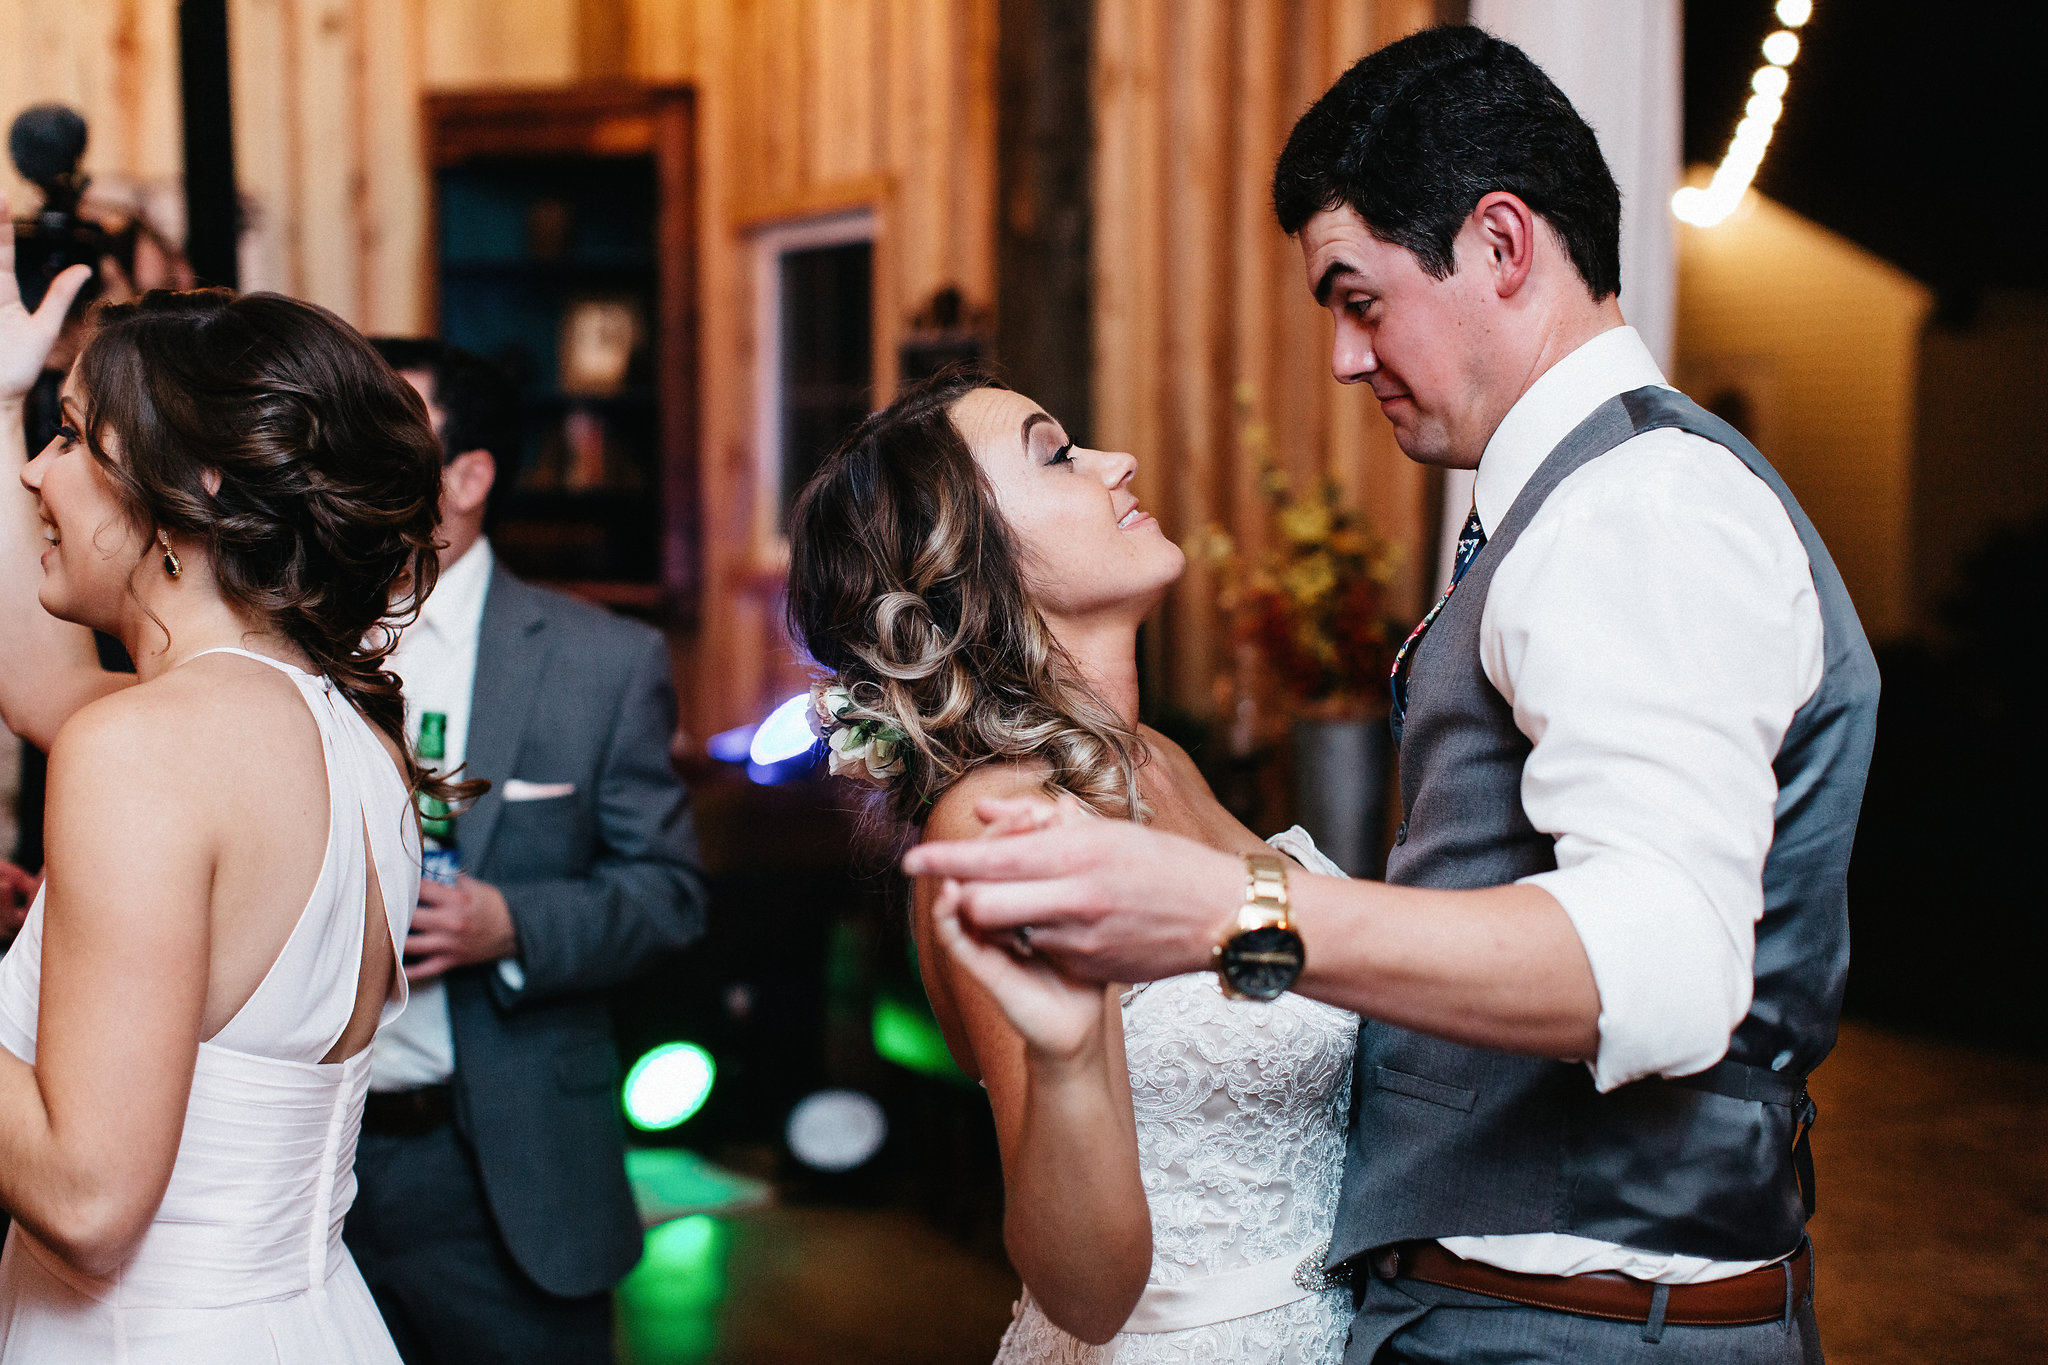 Ashley&NathanMarried2017-11-10at19.26.50PM124.jpg